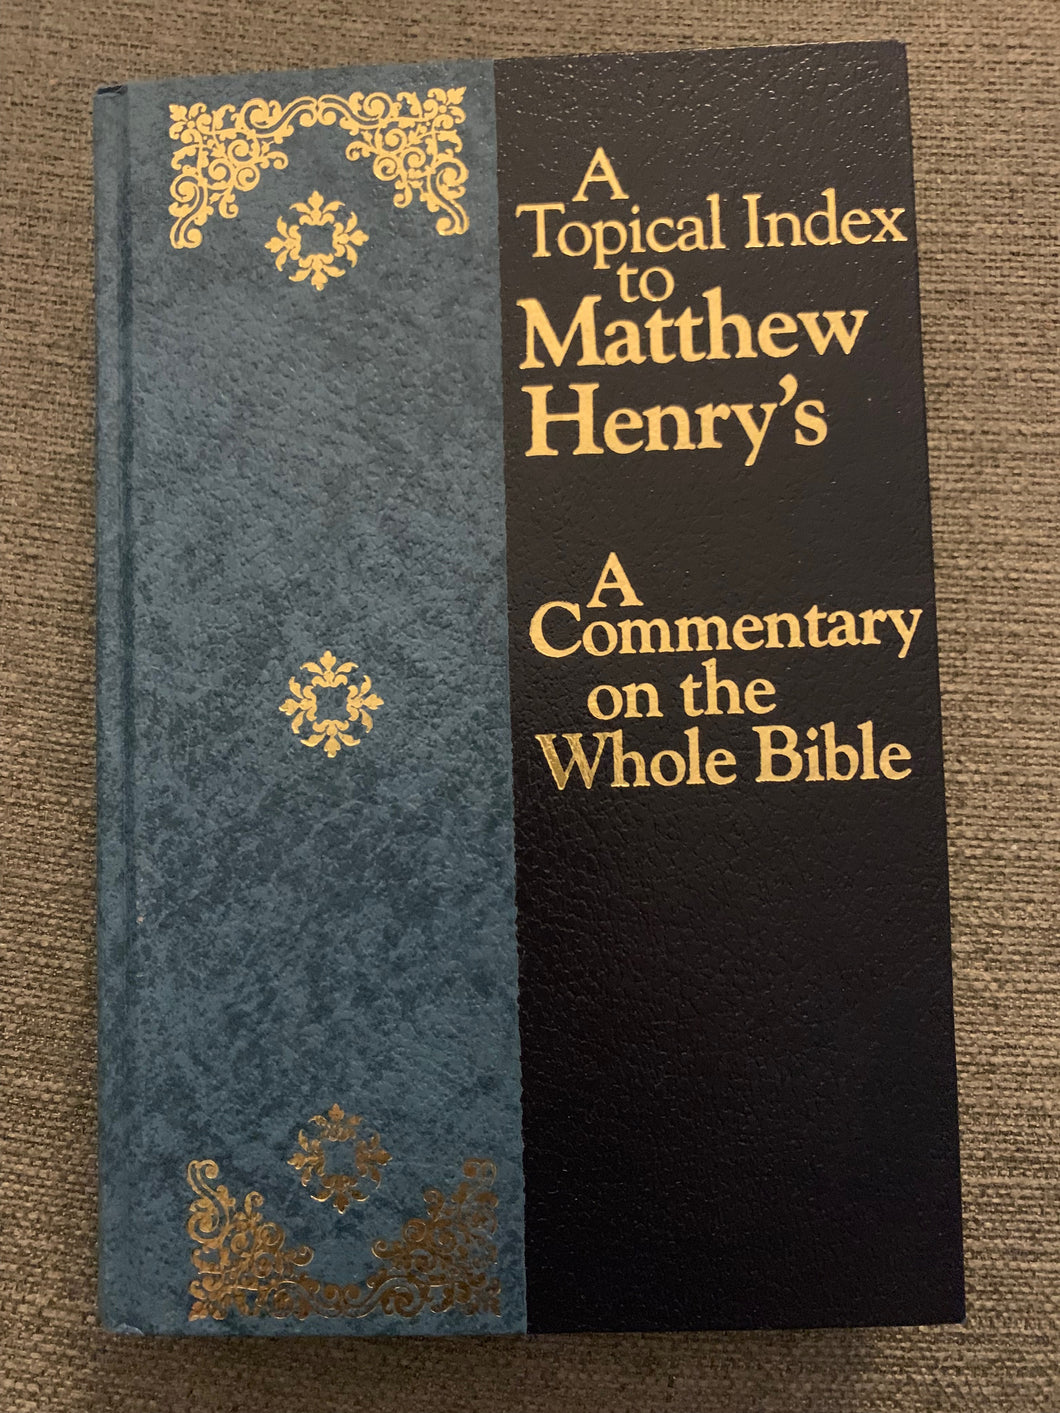 A Topical Index to Matthew Henry's: A Commentary on the Whole Bible